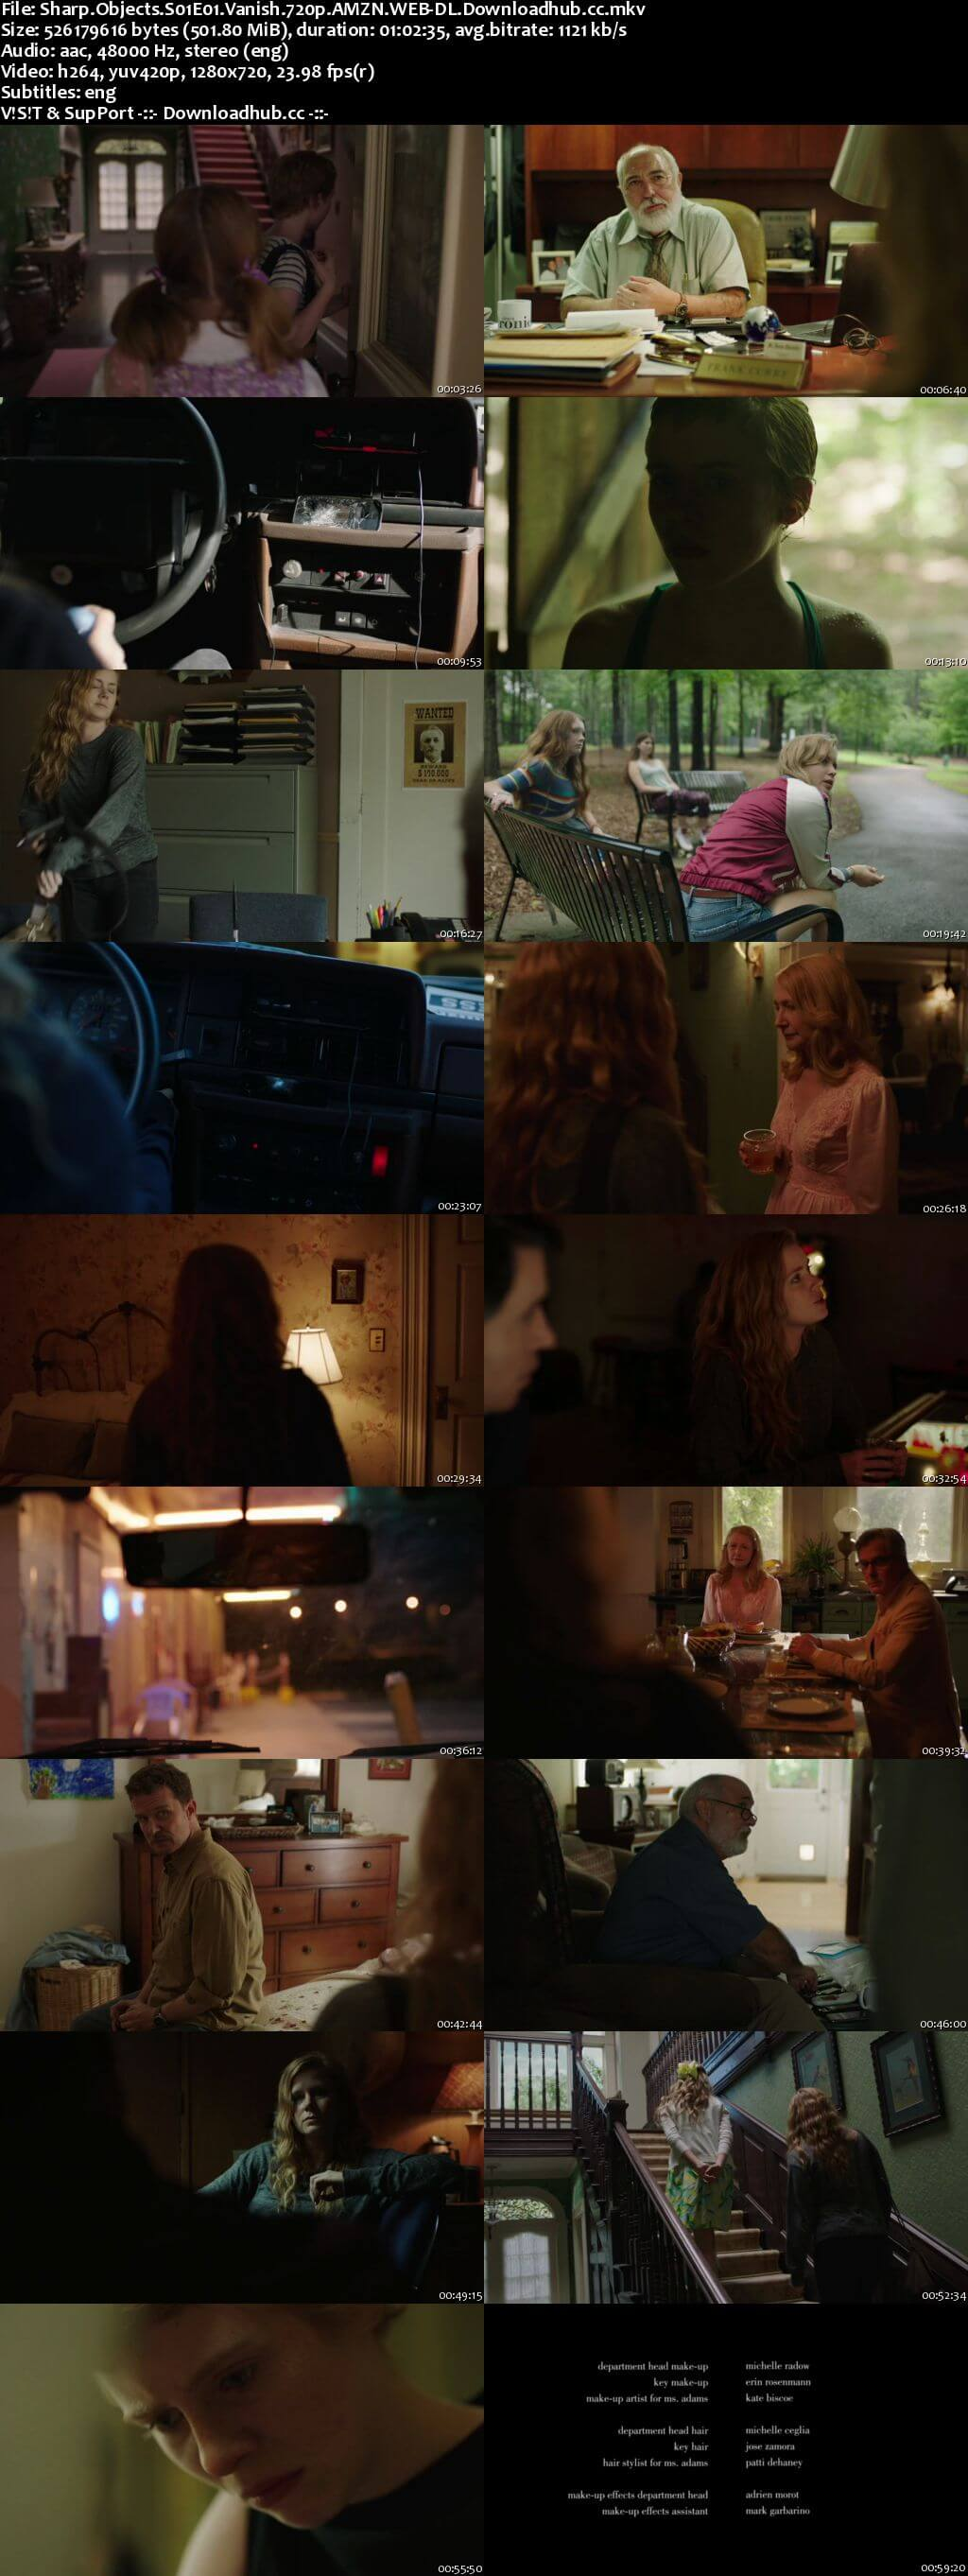 Sharp Objects S01E01 500MB WEB-DL 720p ESubs